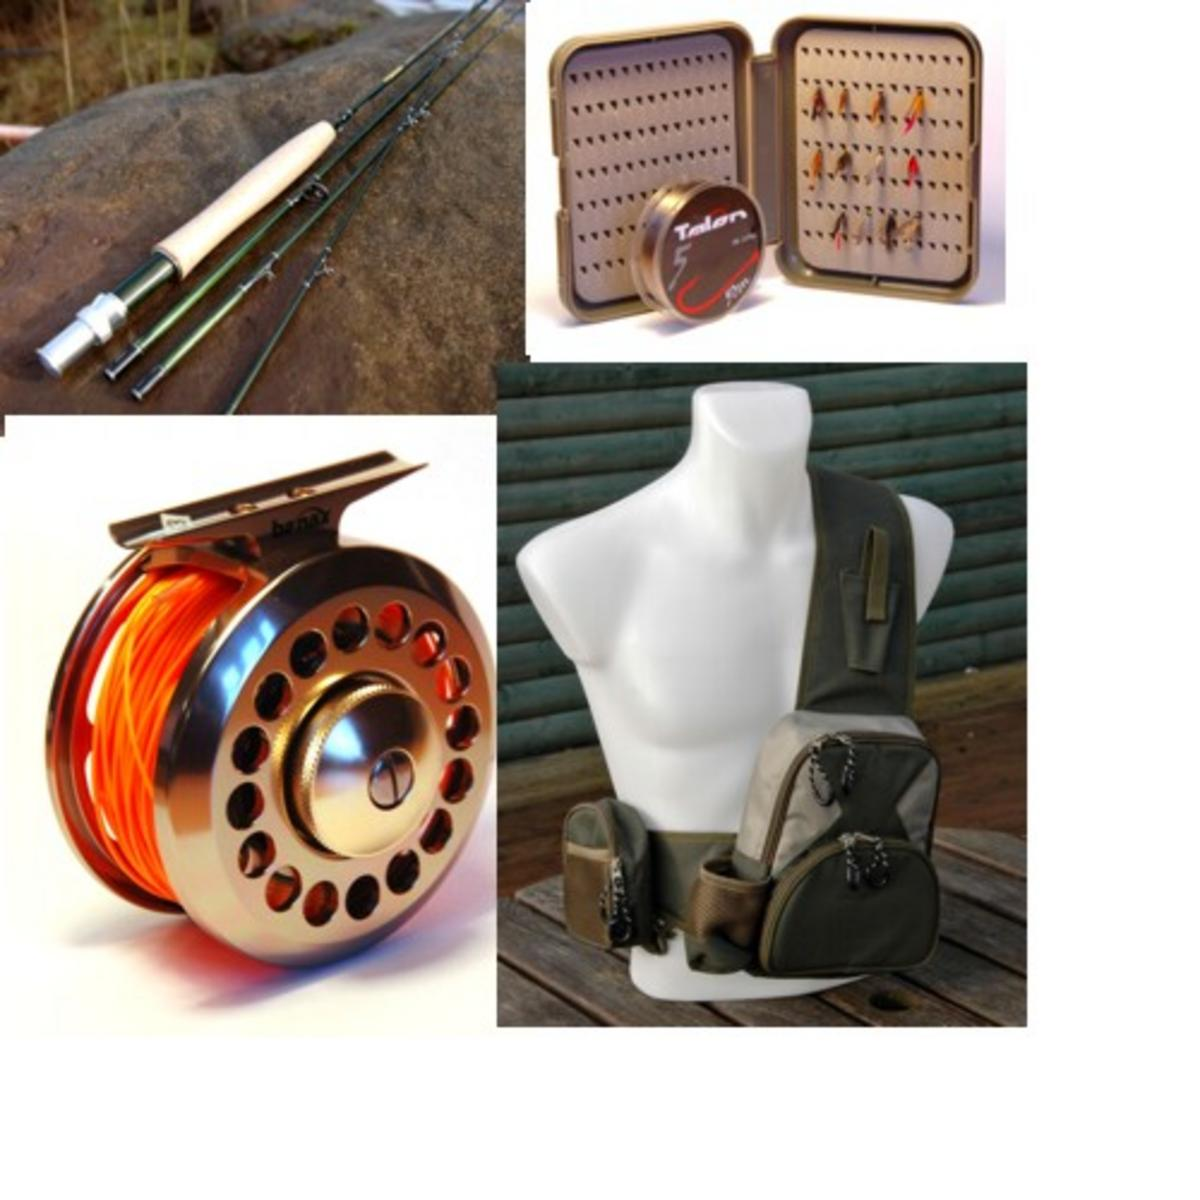 RIVER STREAM FLY FISHING KIT 4 SECTION 8' FLY ROD, REEL LINE CHEST PACK & WADERS